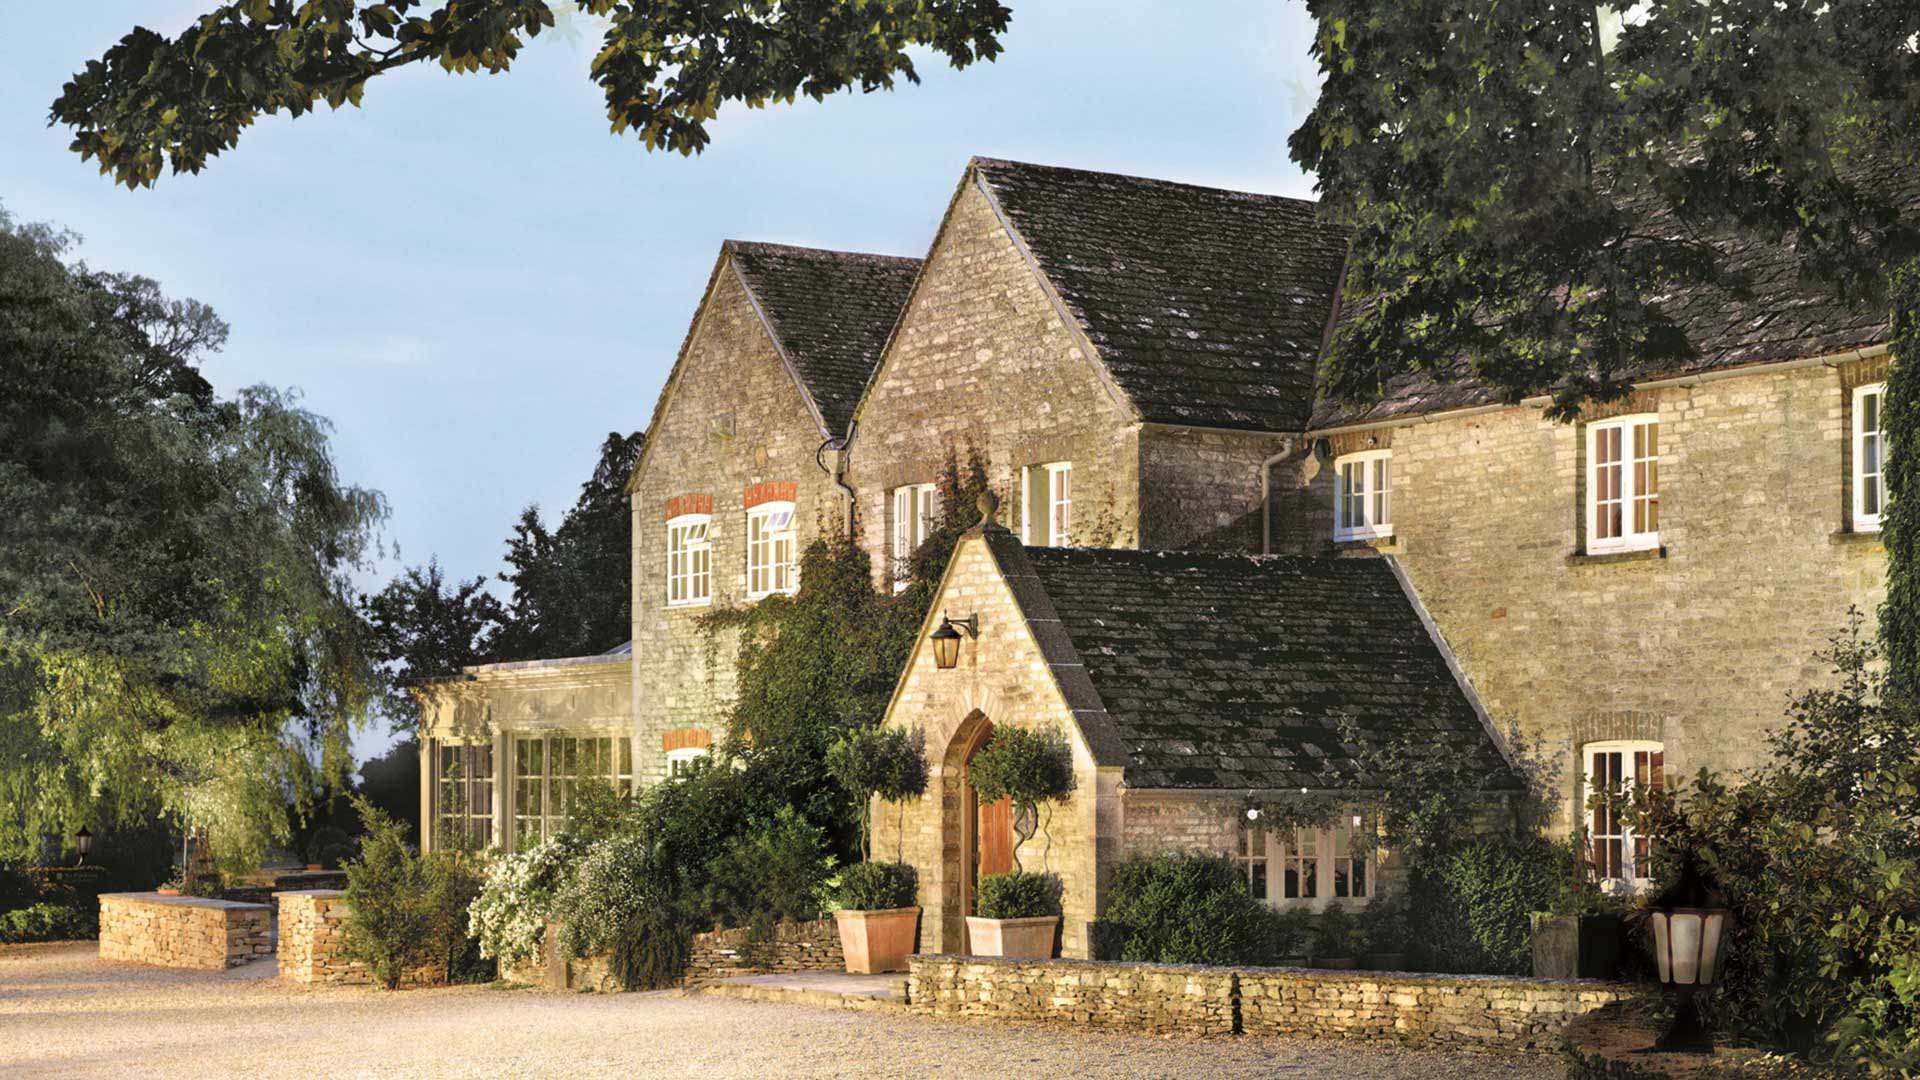 Calcot Amp Spa Luxury Hotels Gloucestershire Pride Of